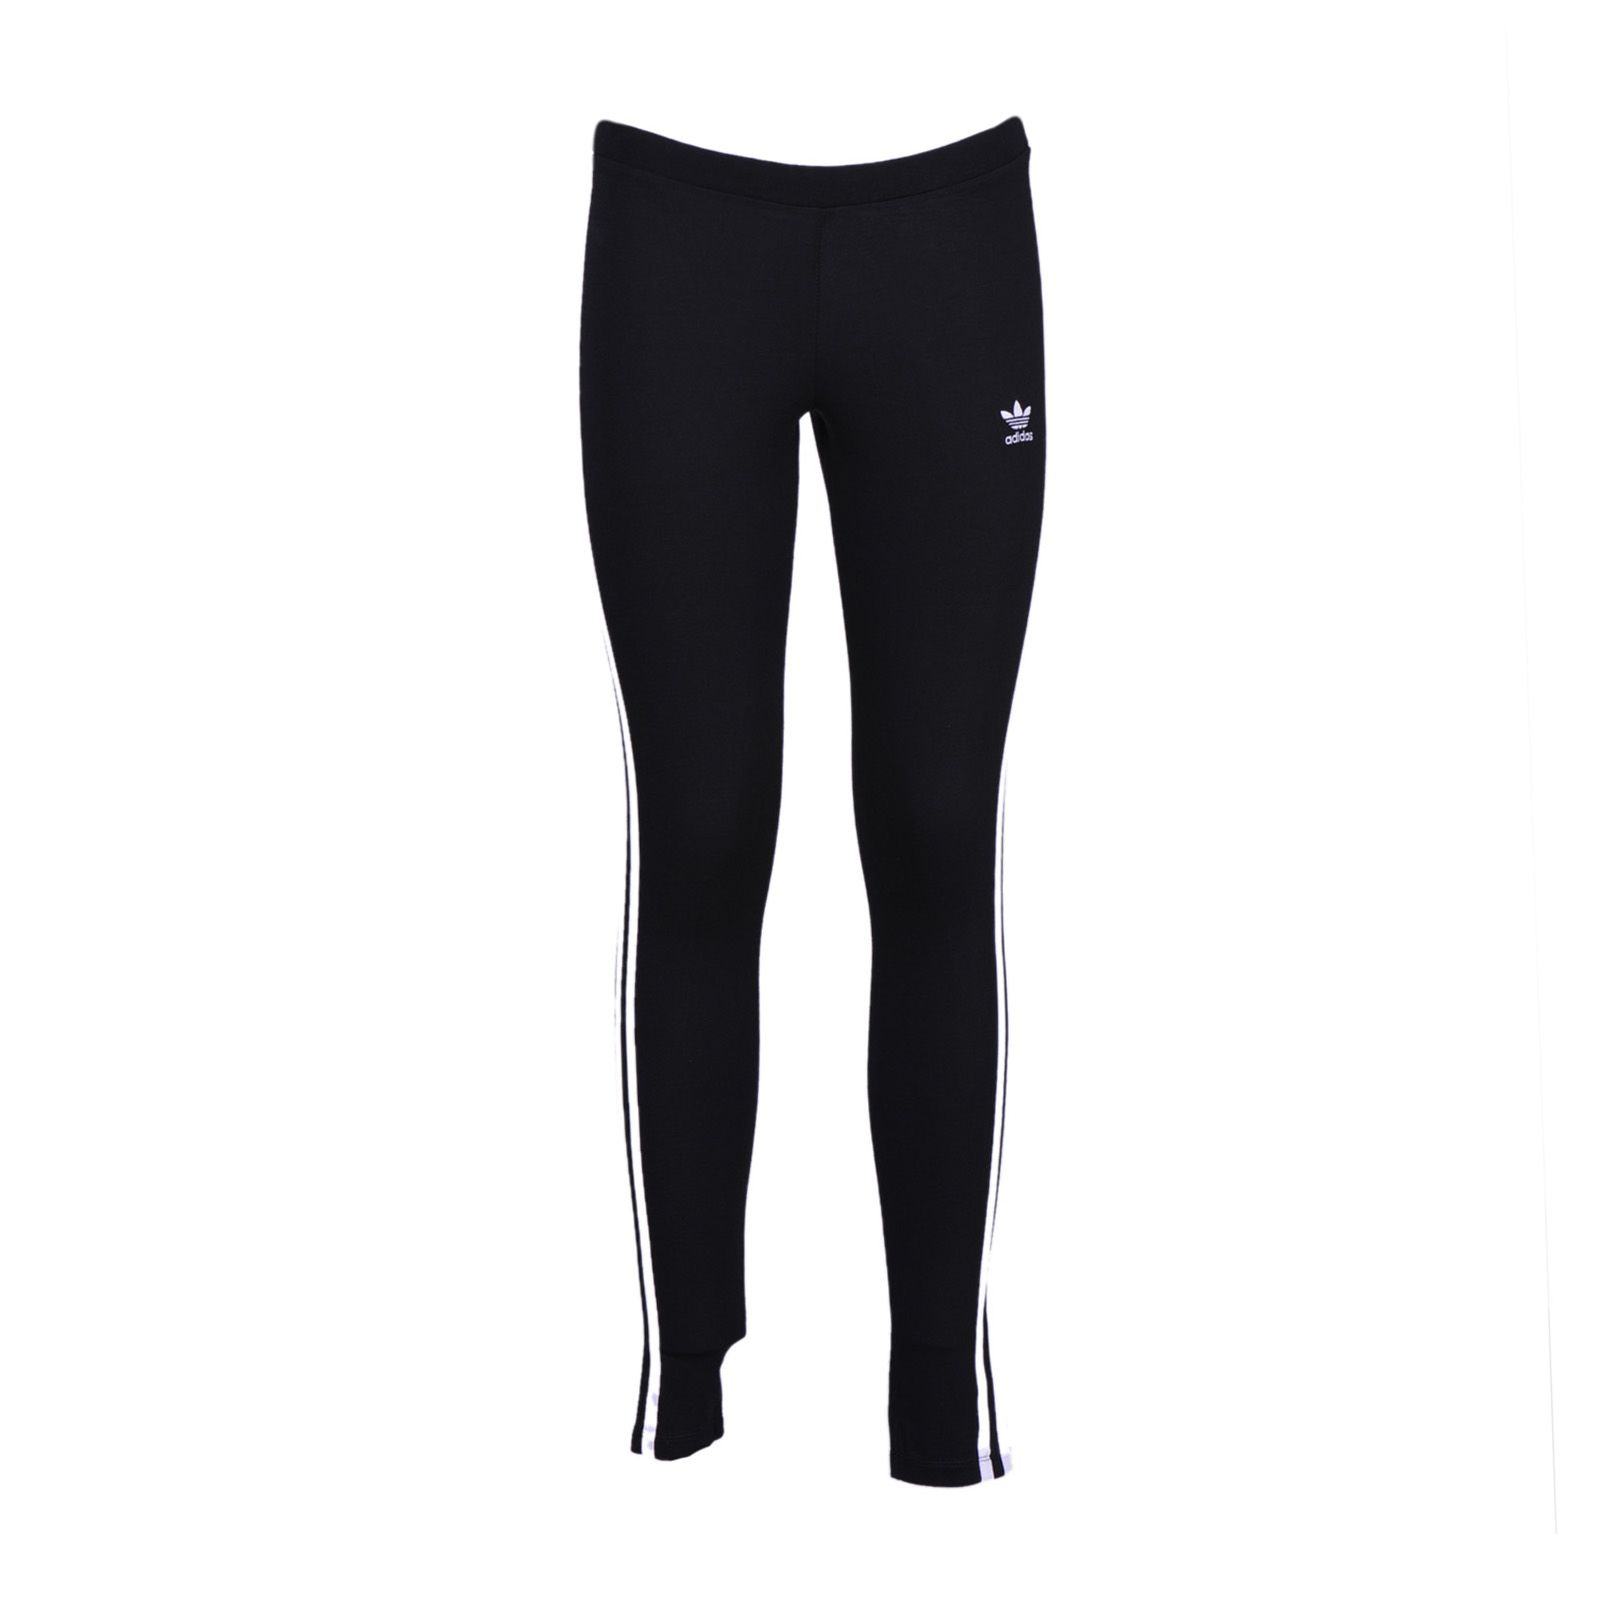 Women'S Originals Trefoil 3-Stripes Leggings, Black